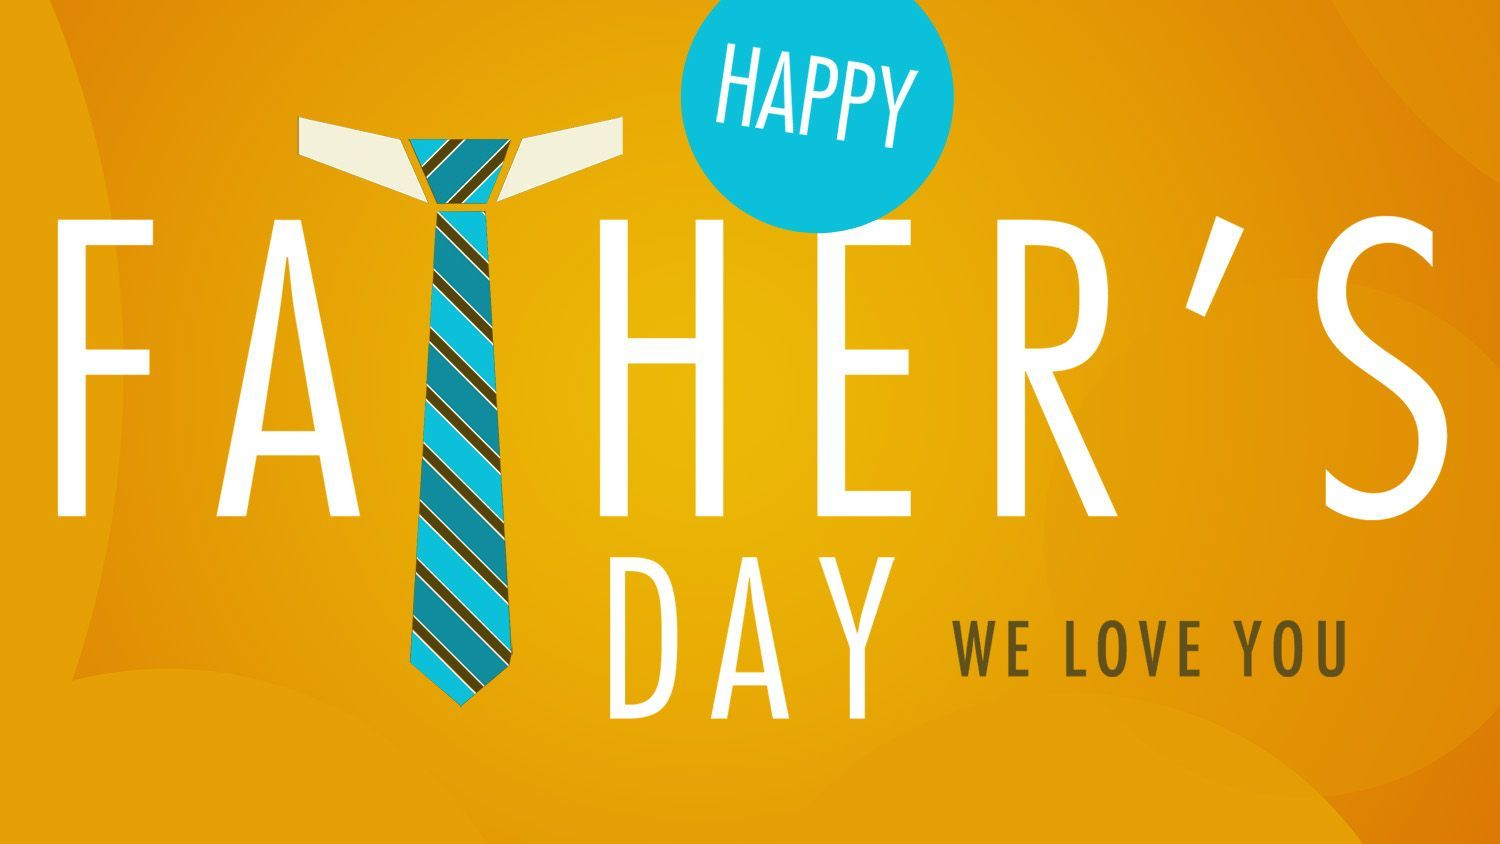 ♦♫♦・*:..。♦Wishing You a Happy Father\'s Day!♦♫♦・*:..。♦♫!_c0345439_16462236.jpg